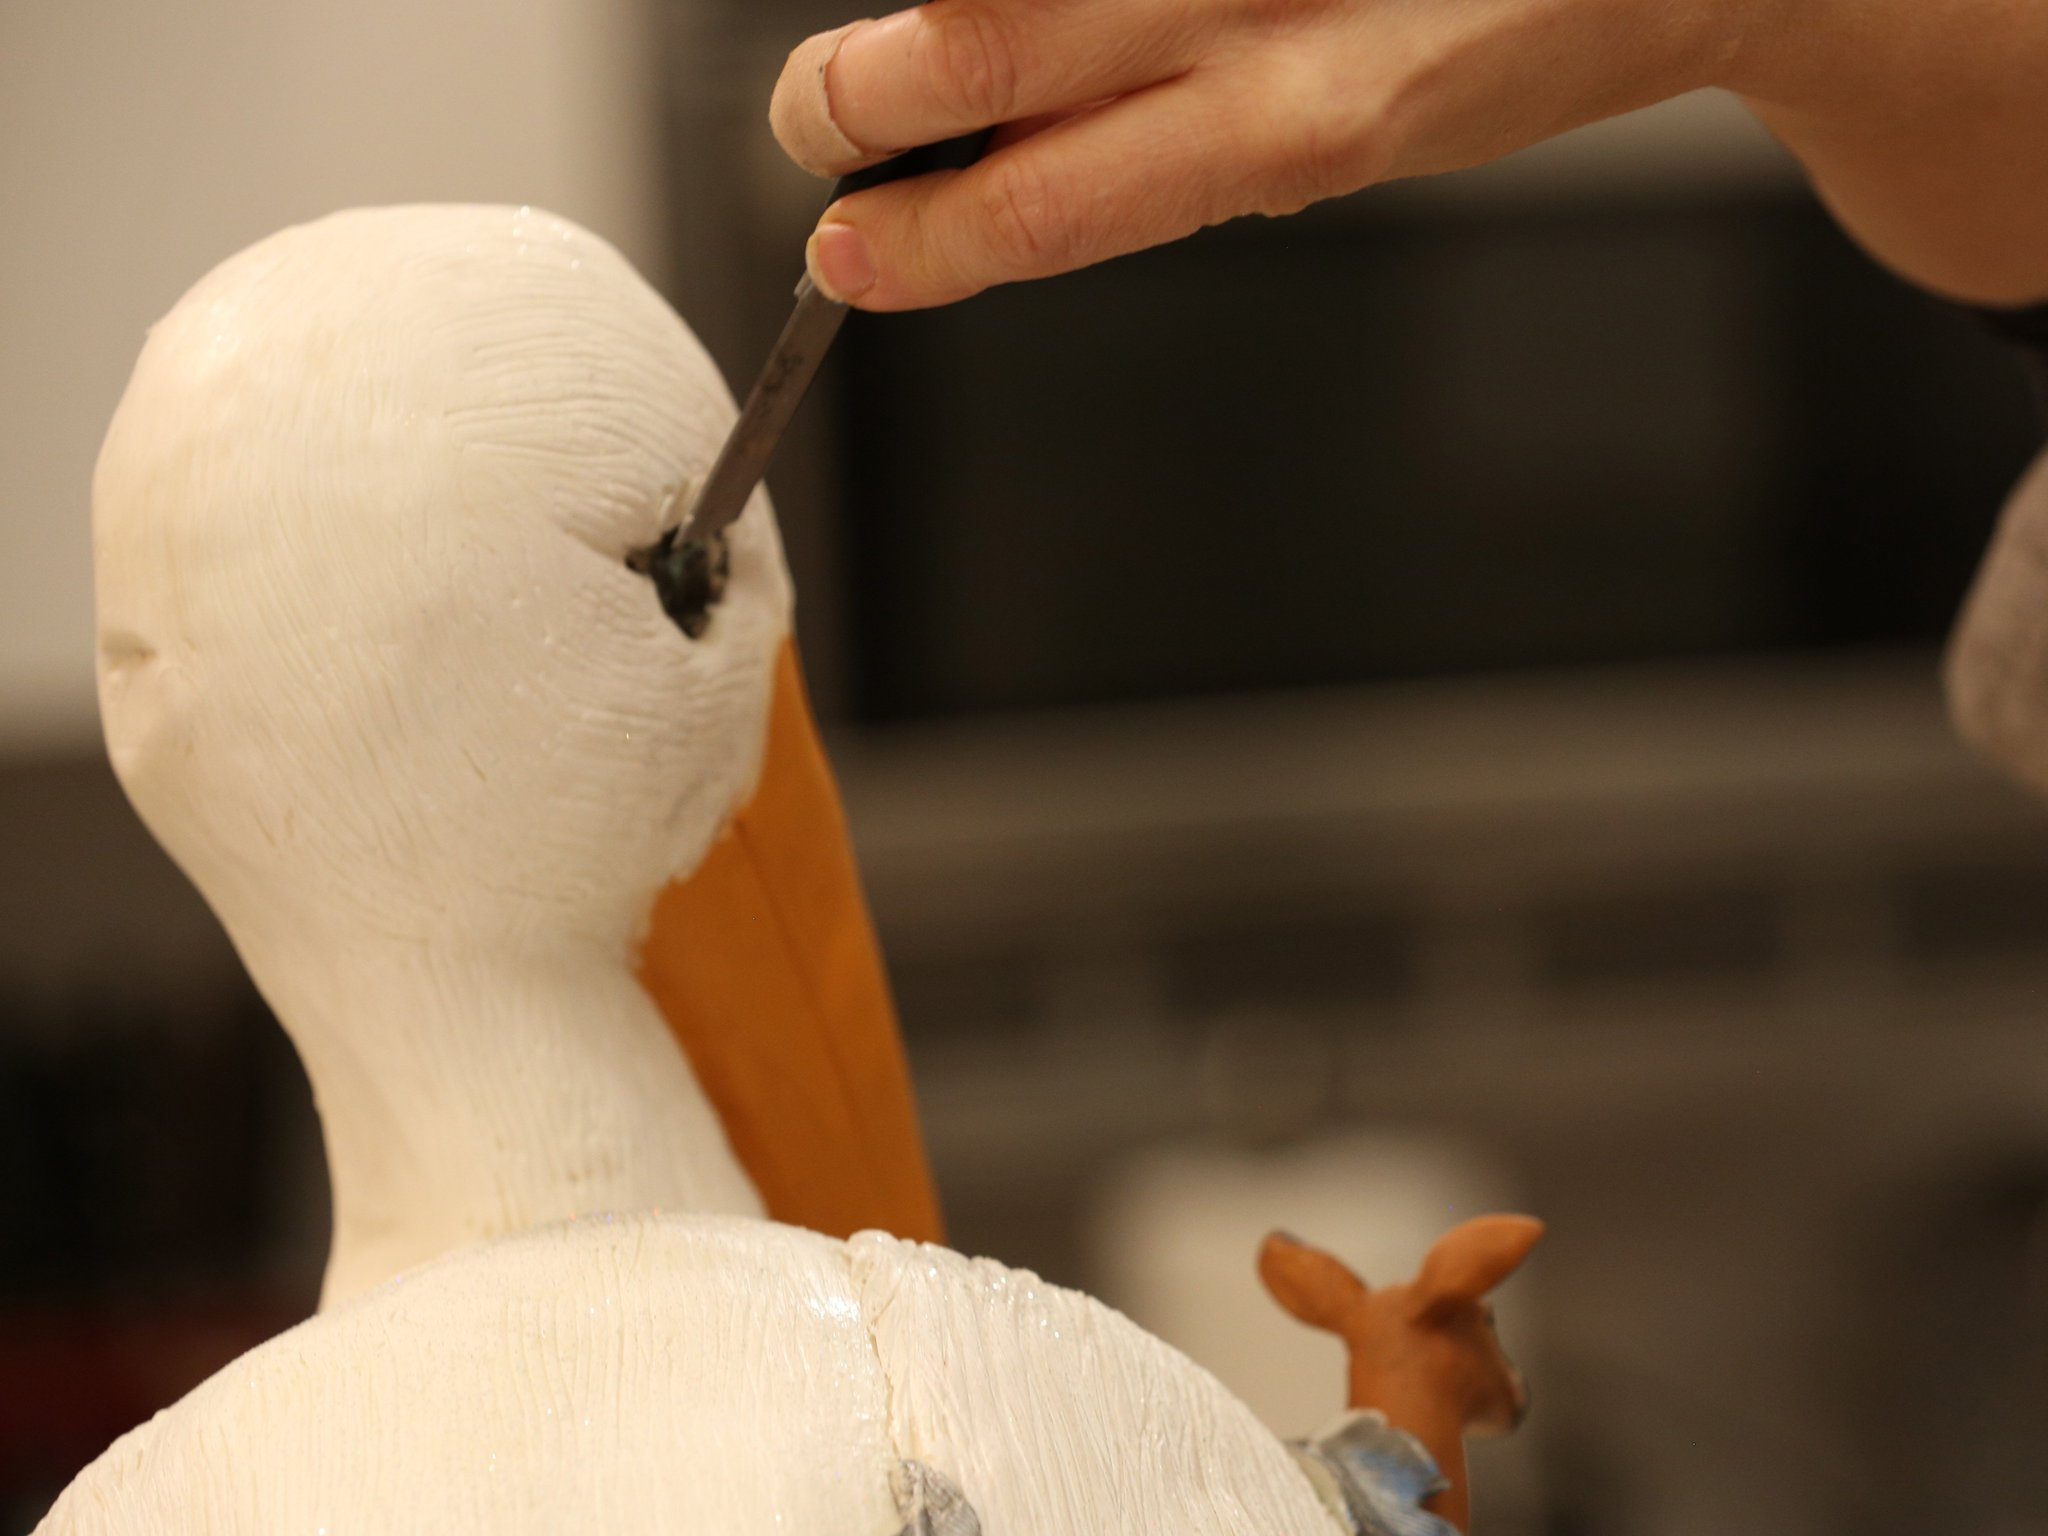 Look at the detail on this stork cake! #RidiculousCakes https://t.co/3gWauEUnNd